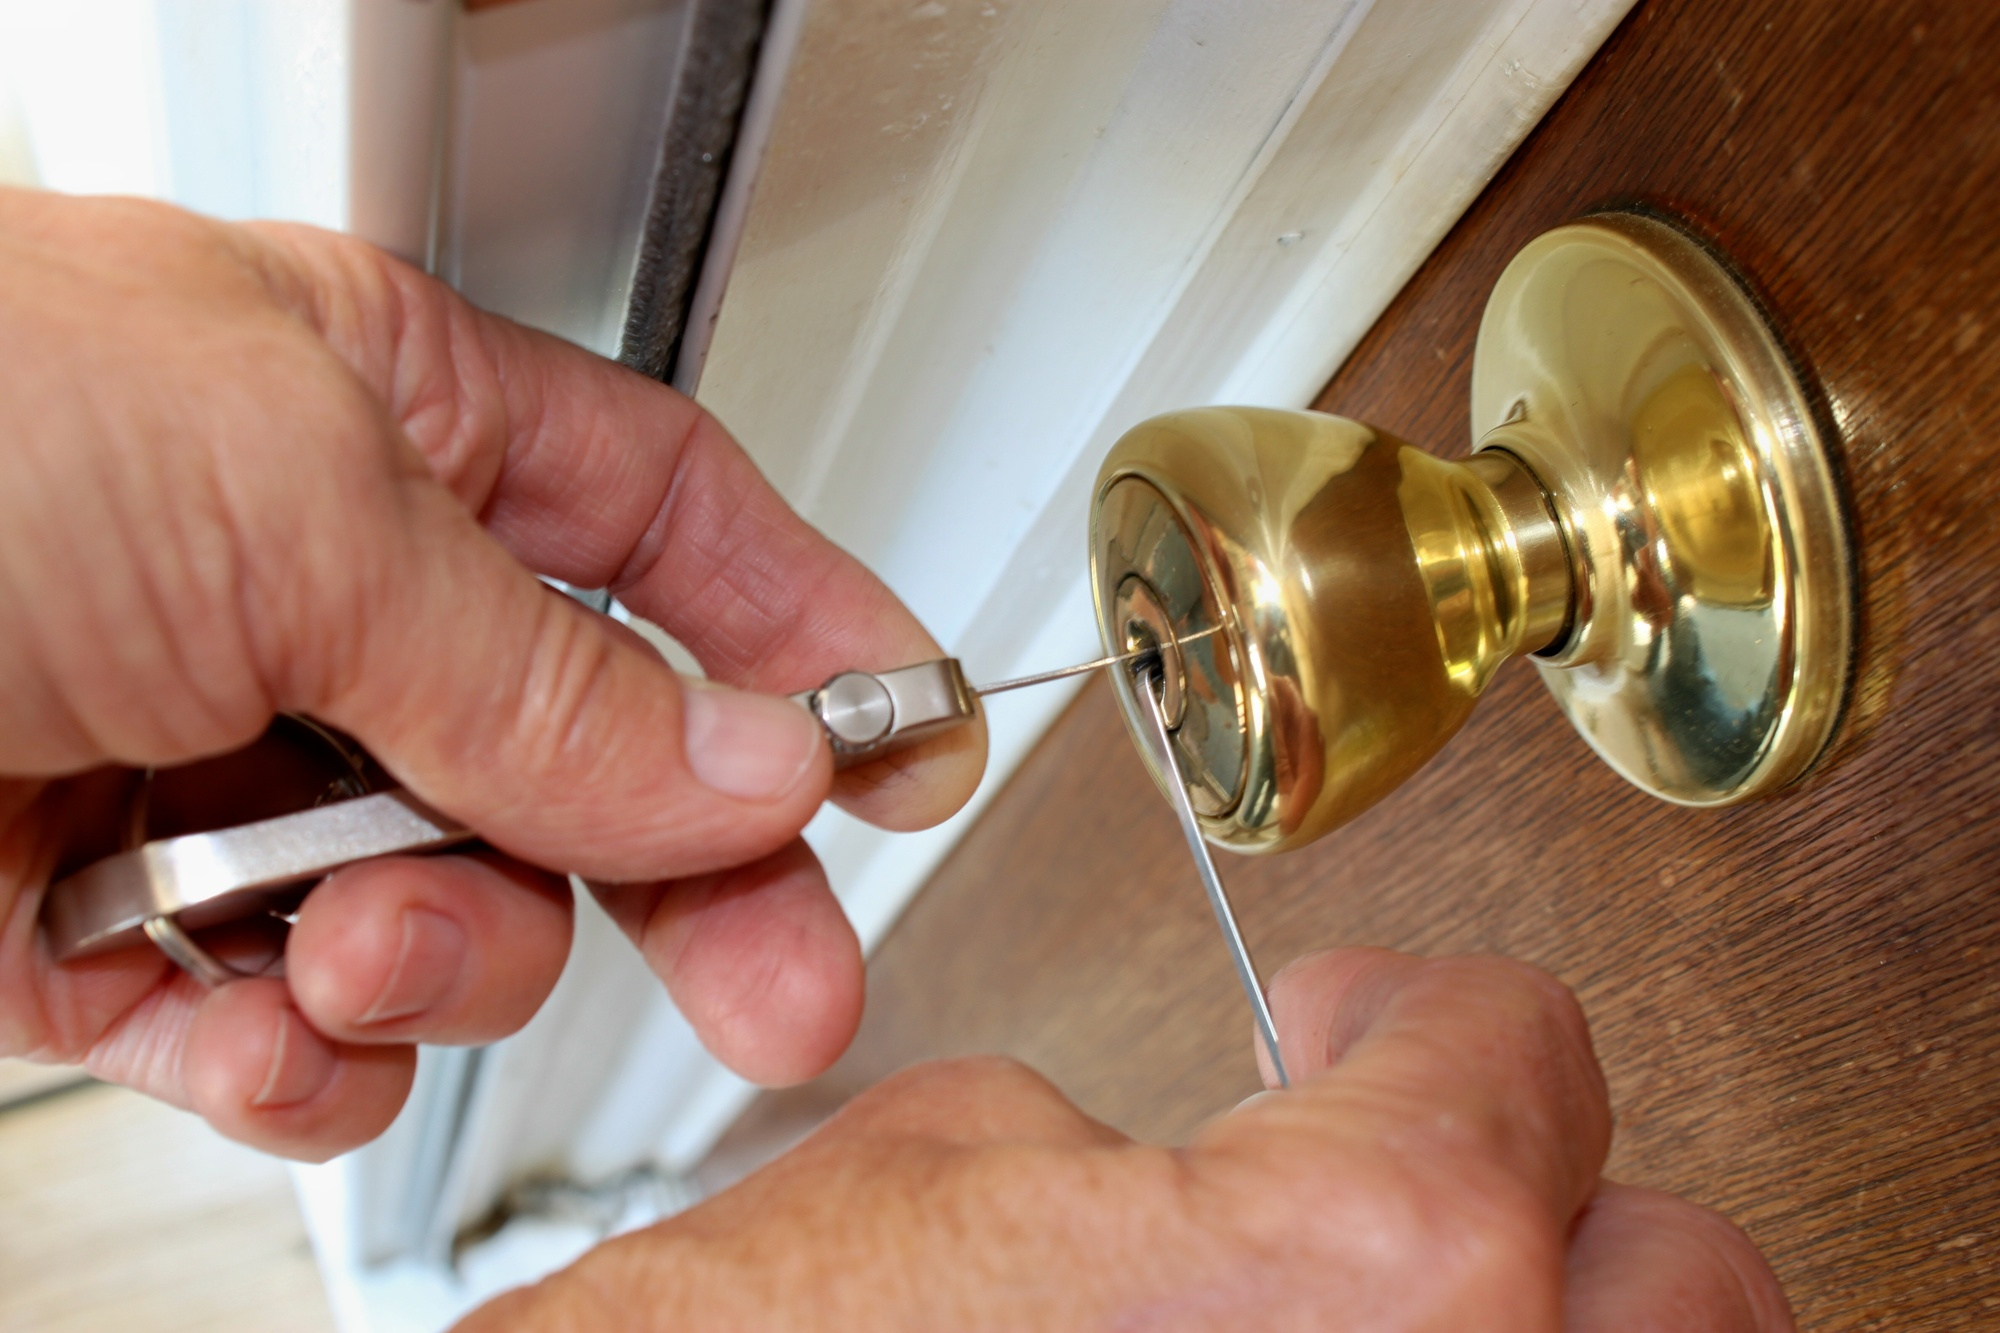 How To Unlock A Door >> Essential Tips For How To Unlock A Door Without A Key Top